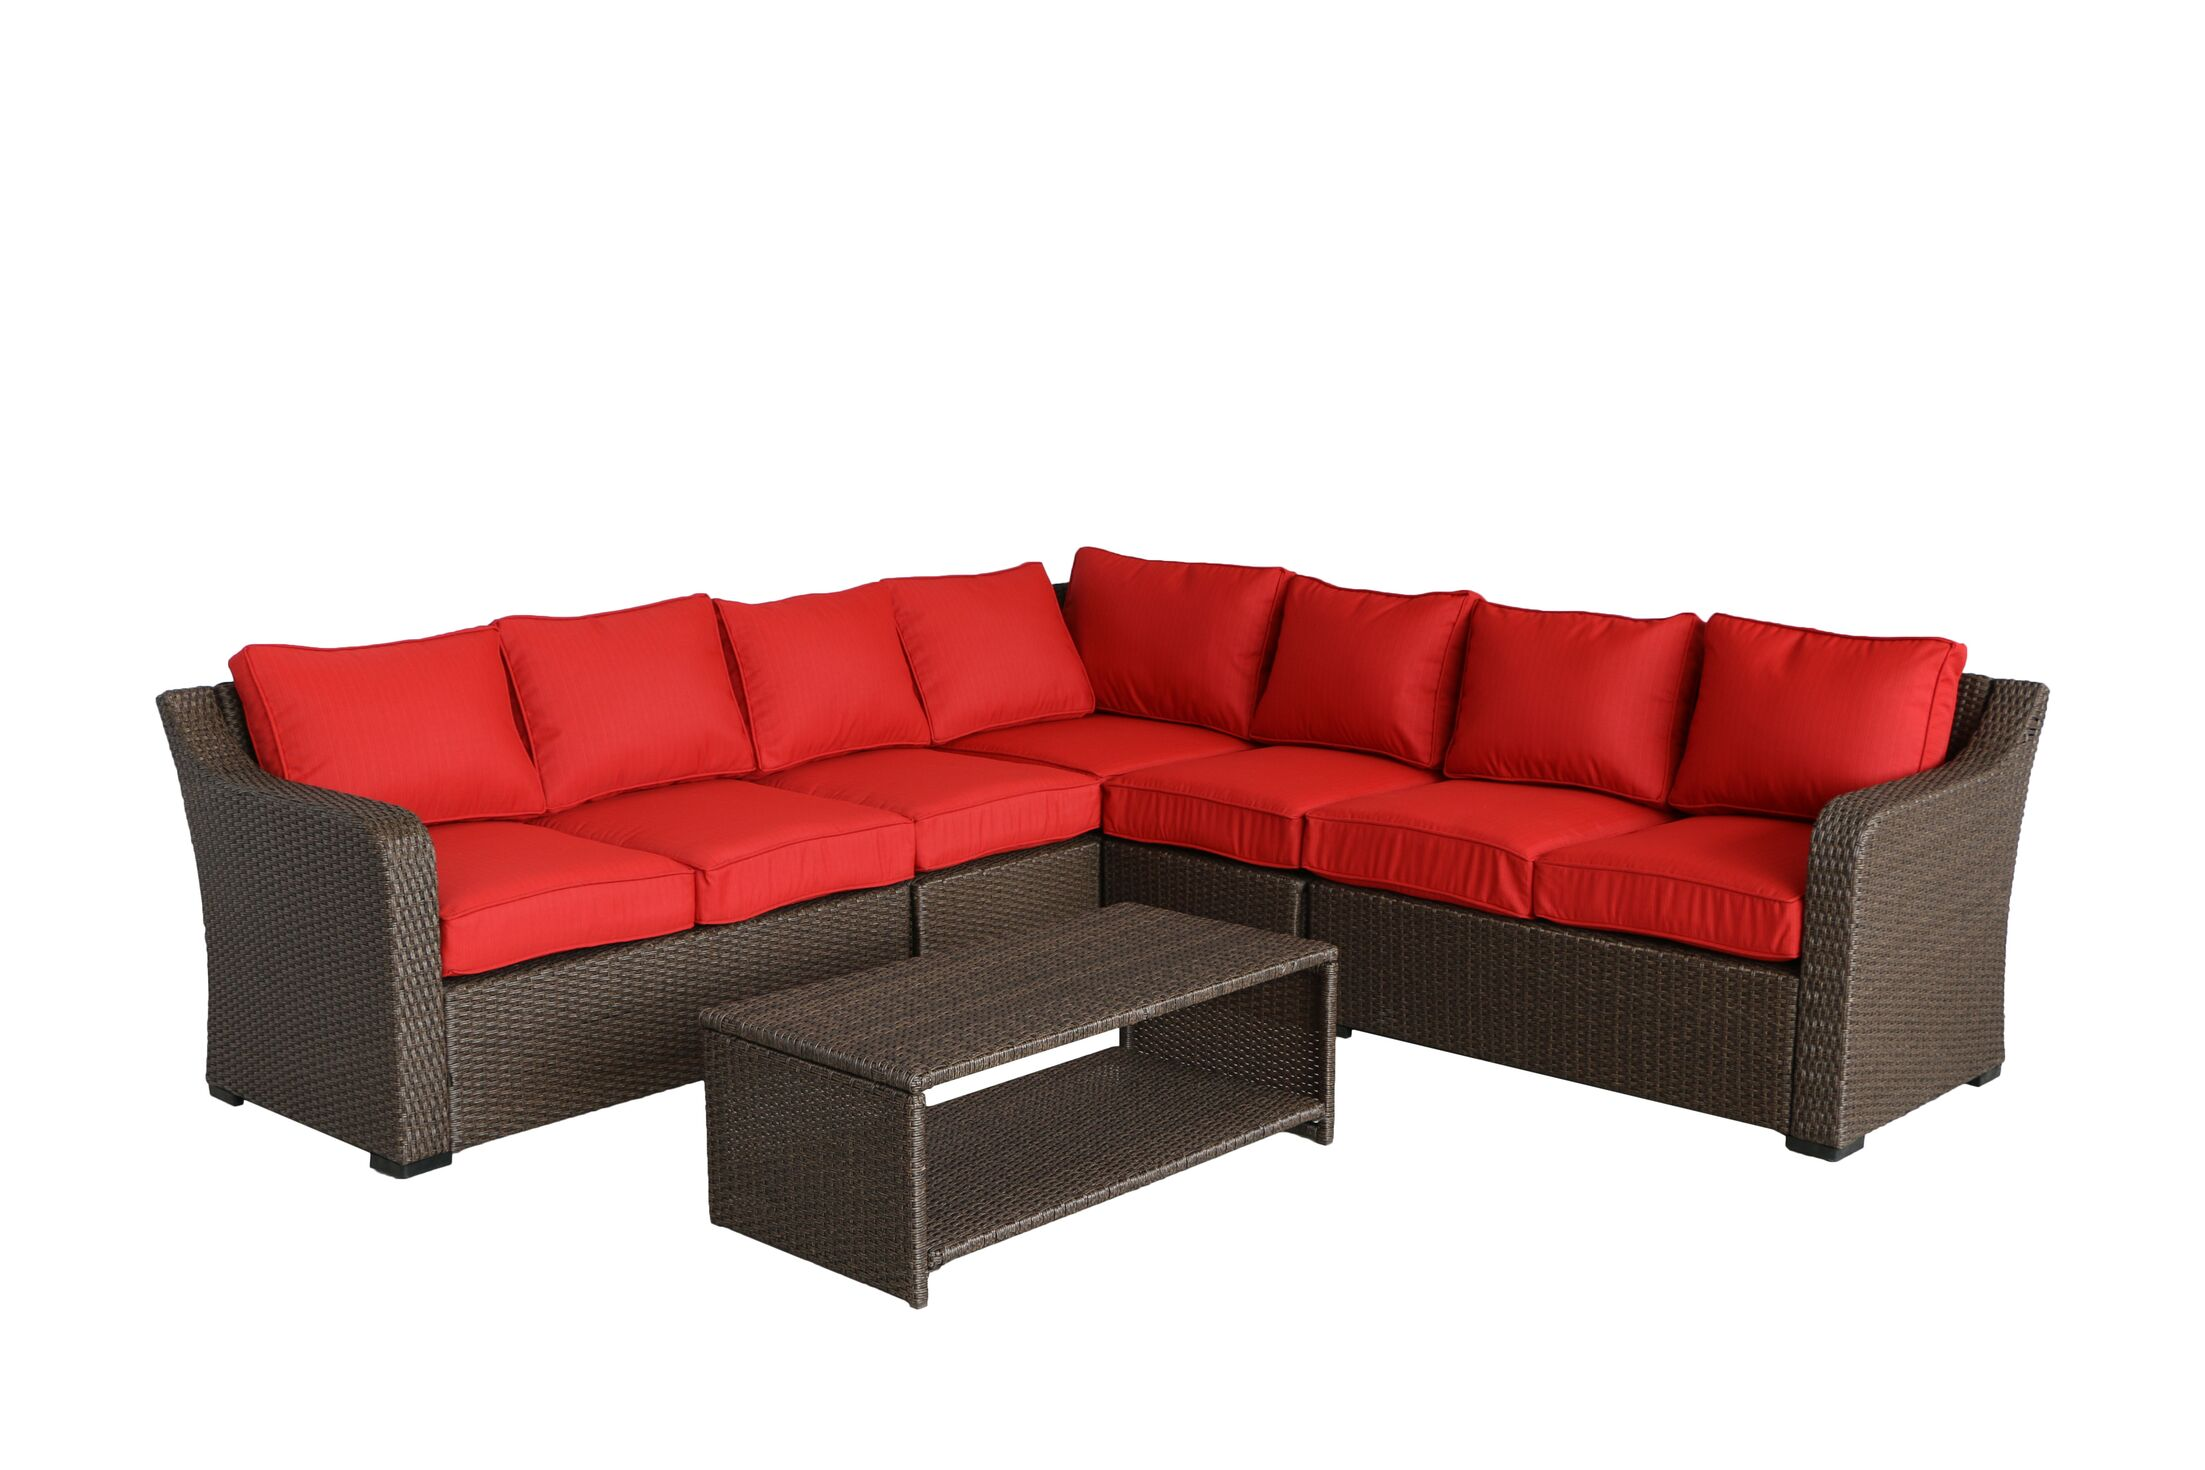 Danby 6 Piece Sectional Set with Cushions Cushion Color: Ribbed Strawberry